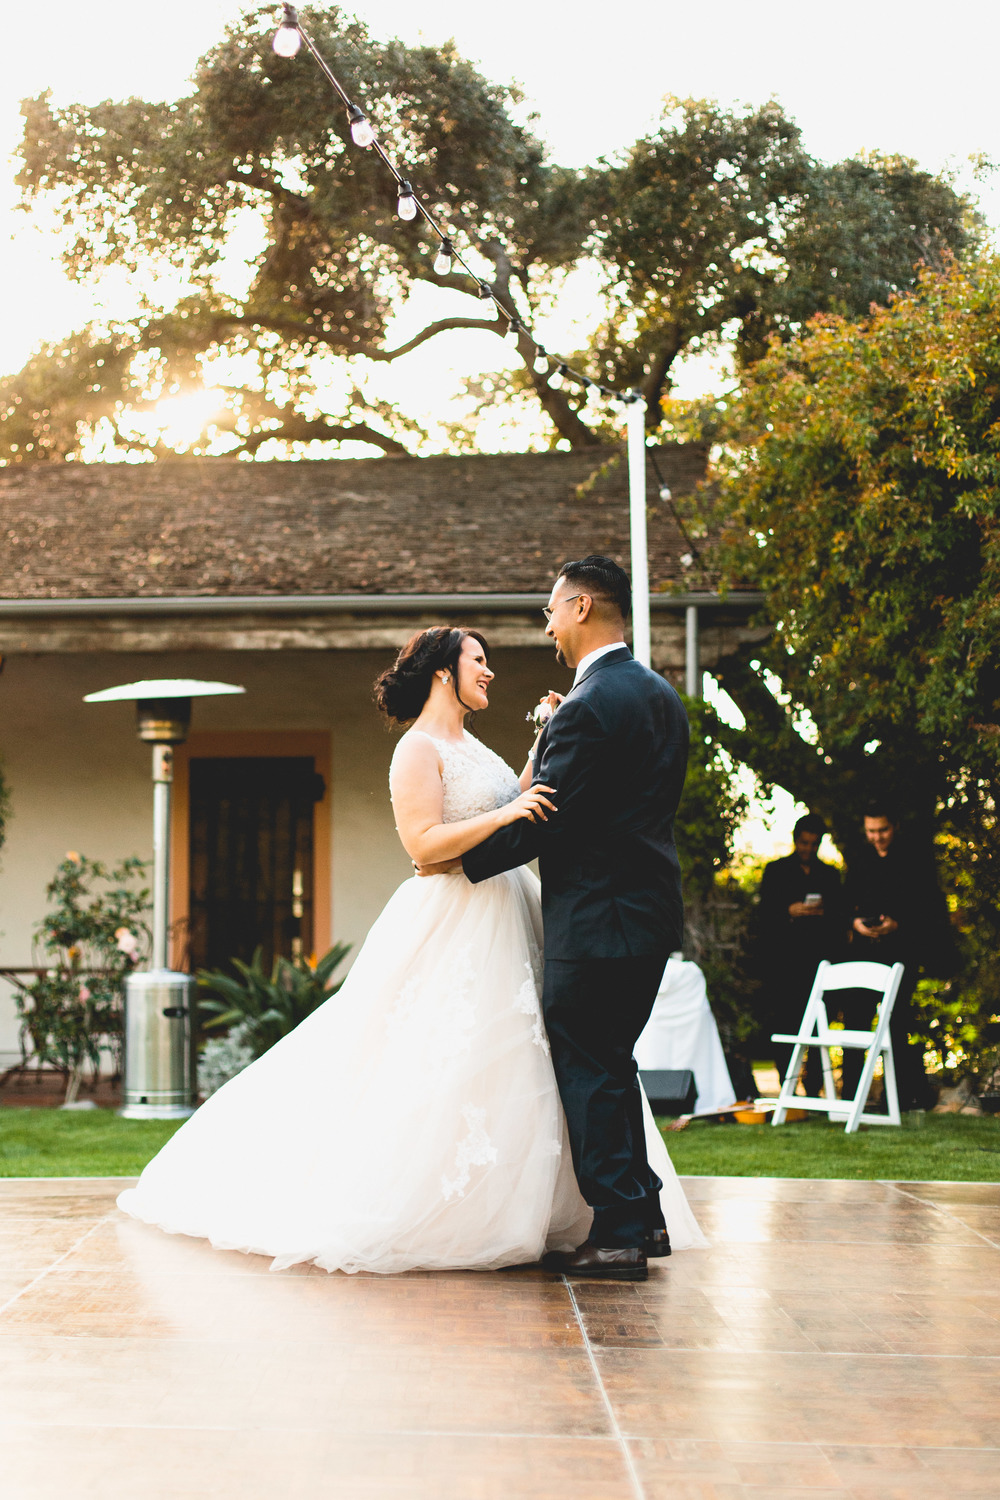 Tiffany + Javier (864 of 1036).jpg